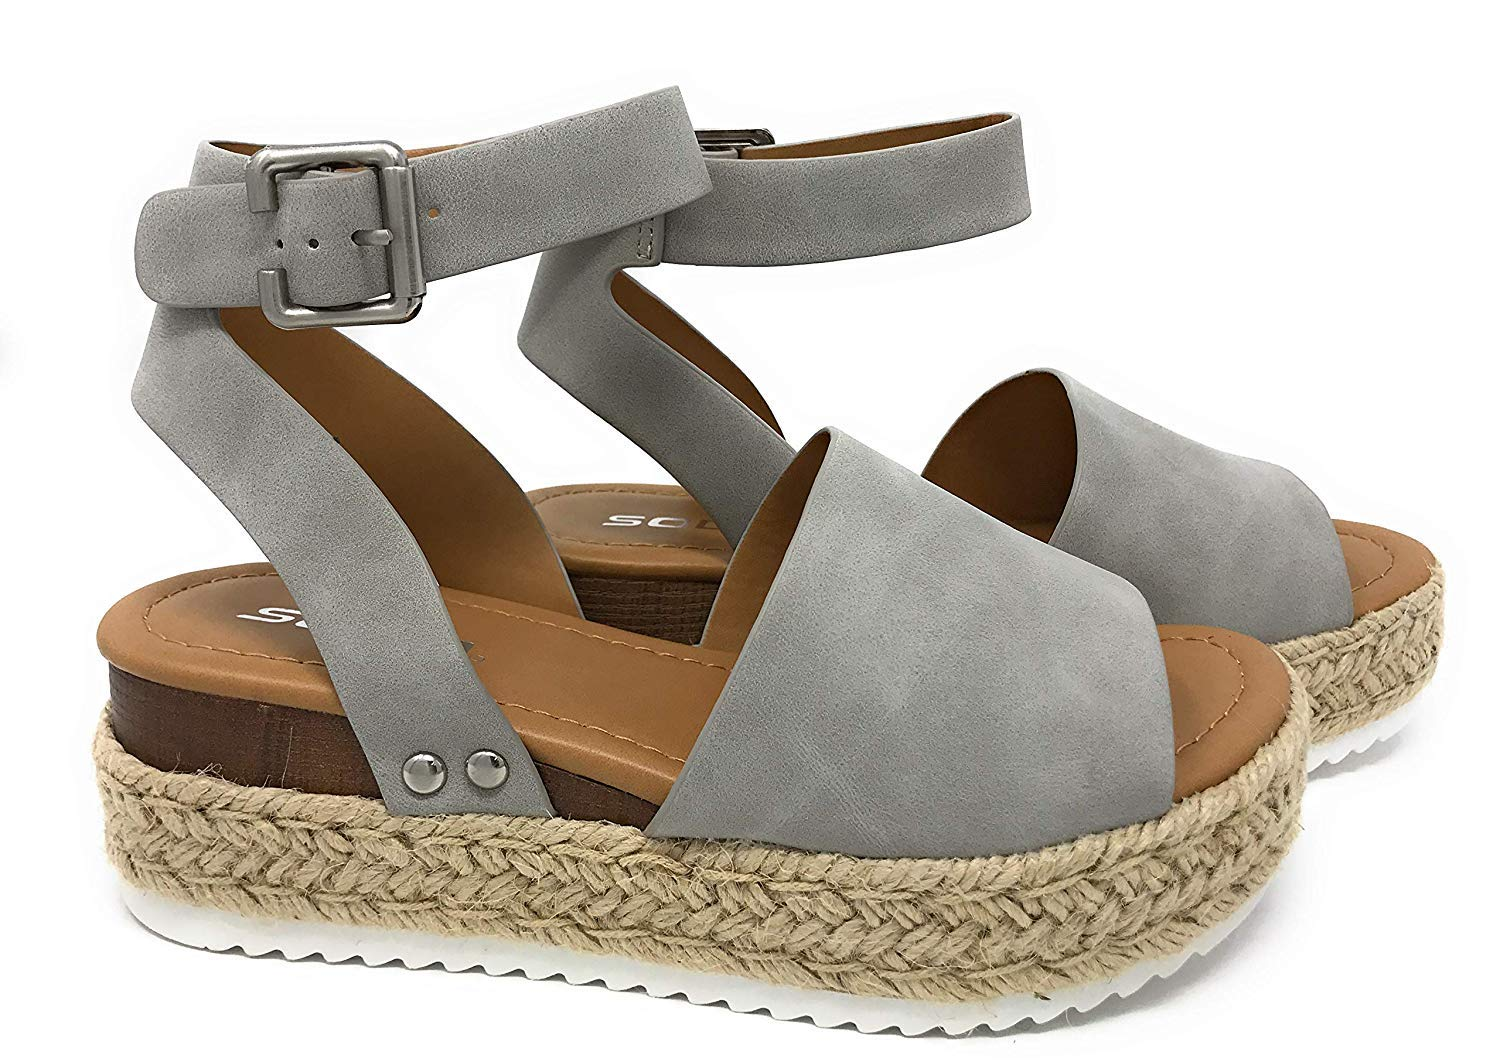 SODA Topic Grey Casual Espadrilles Trim Rubber Sole Flatform Studded Wedge Buckle Ankle Strap Open Toe (11)